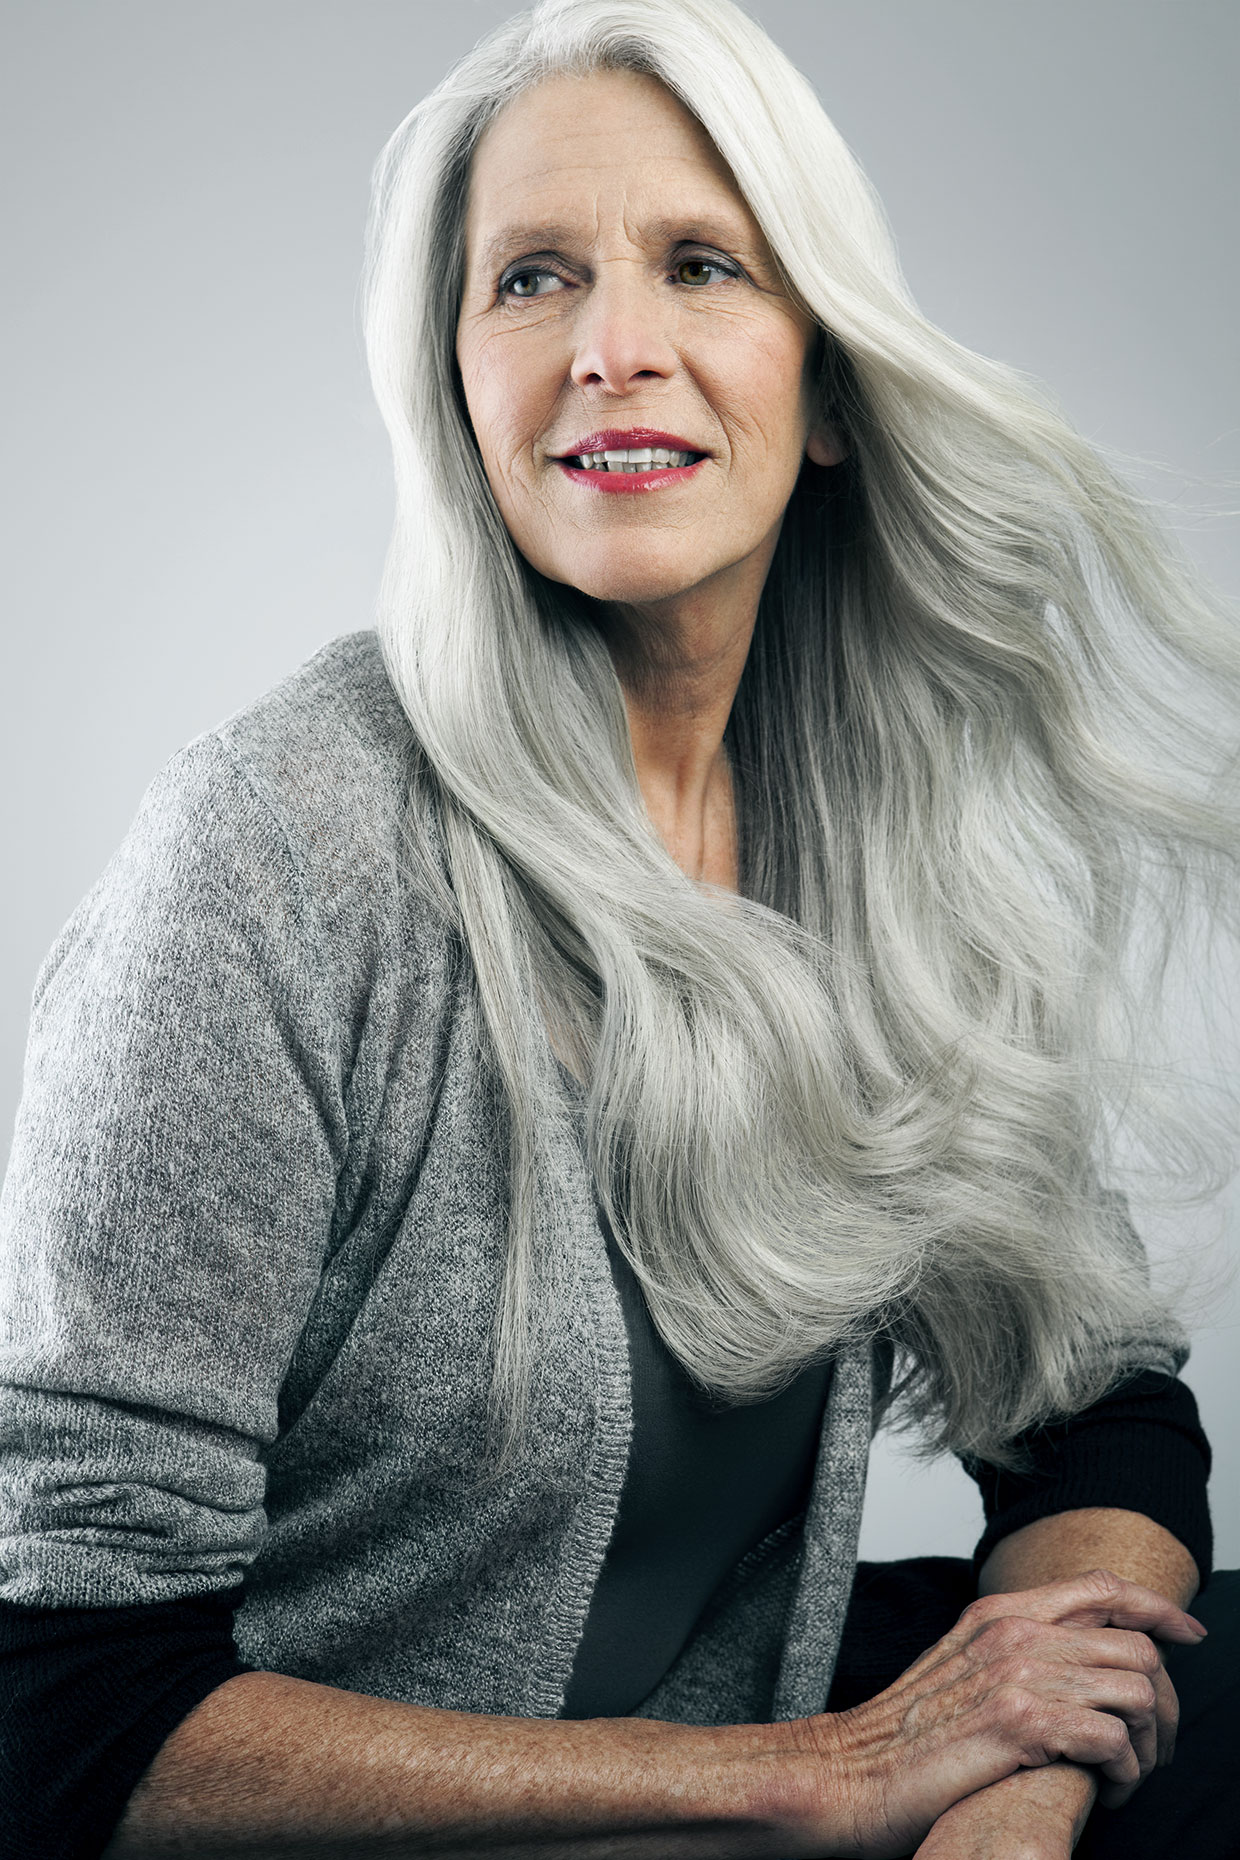 Mature woman with long, gray hair looking away.